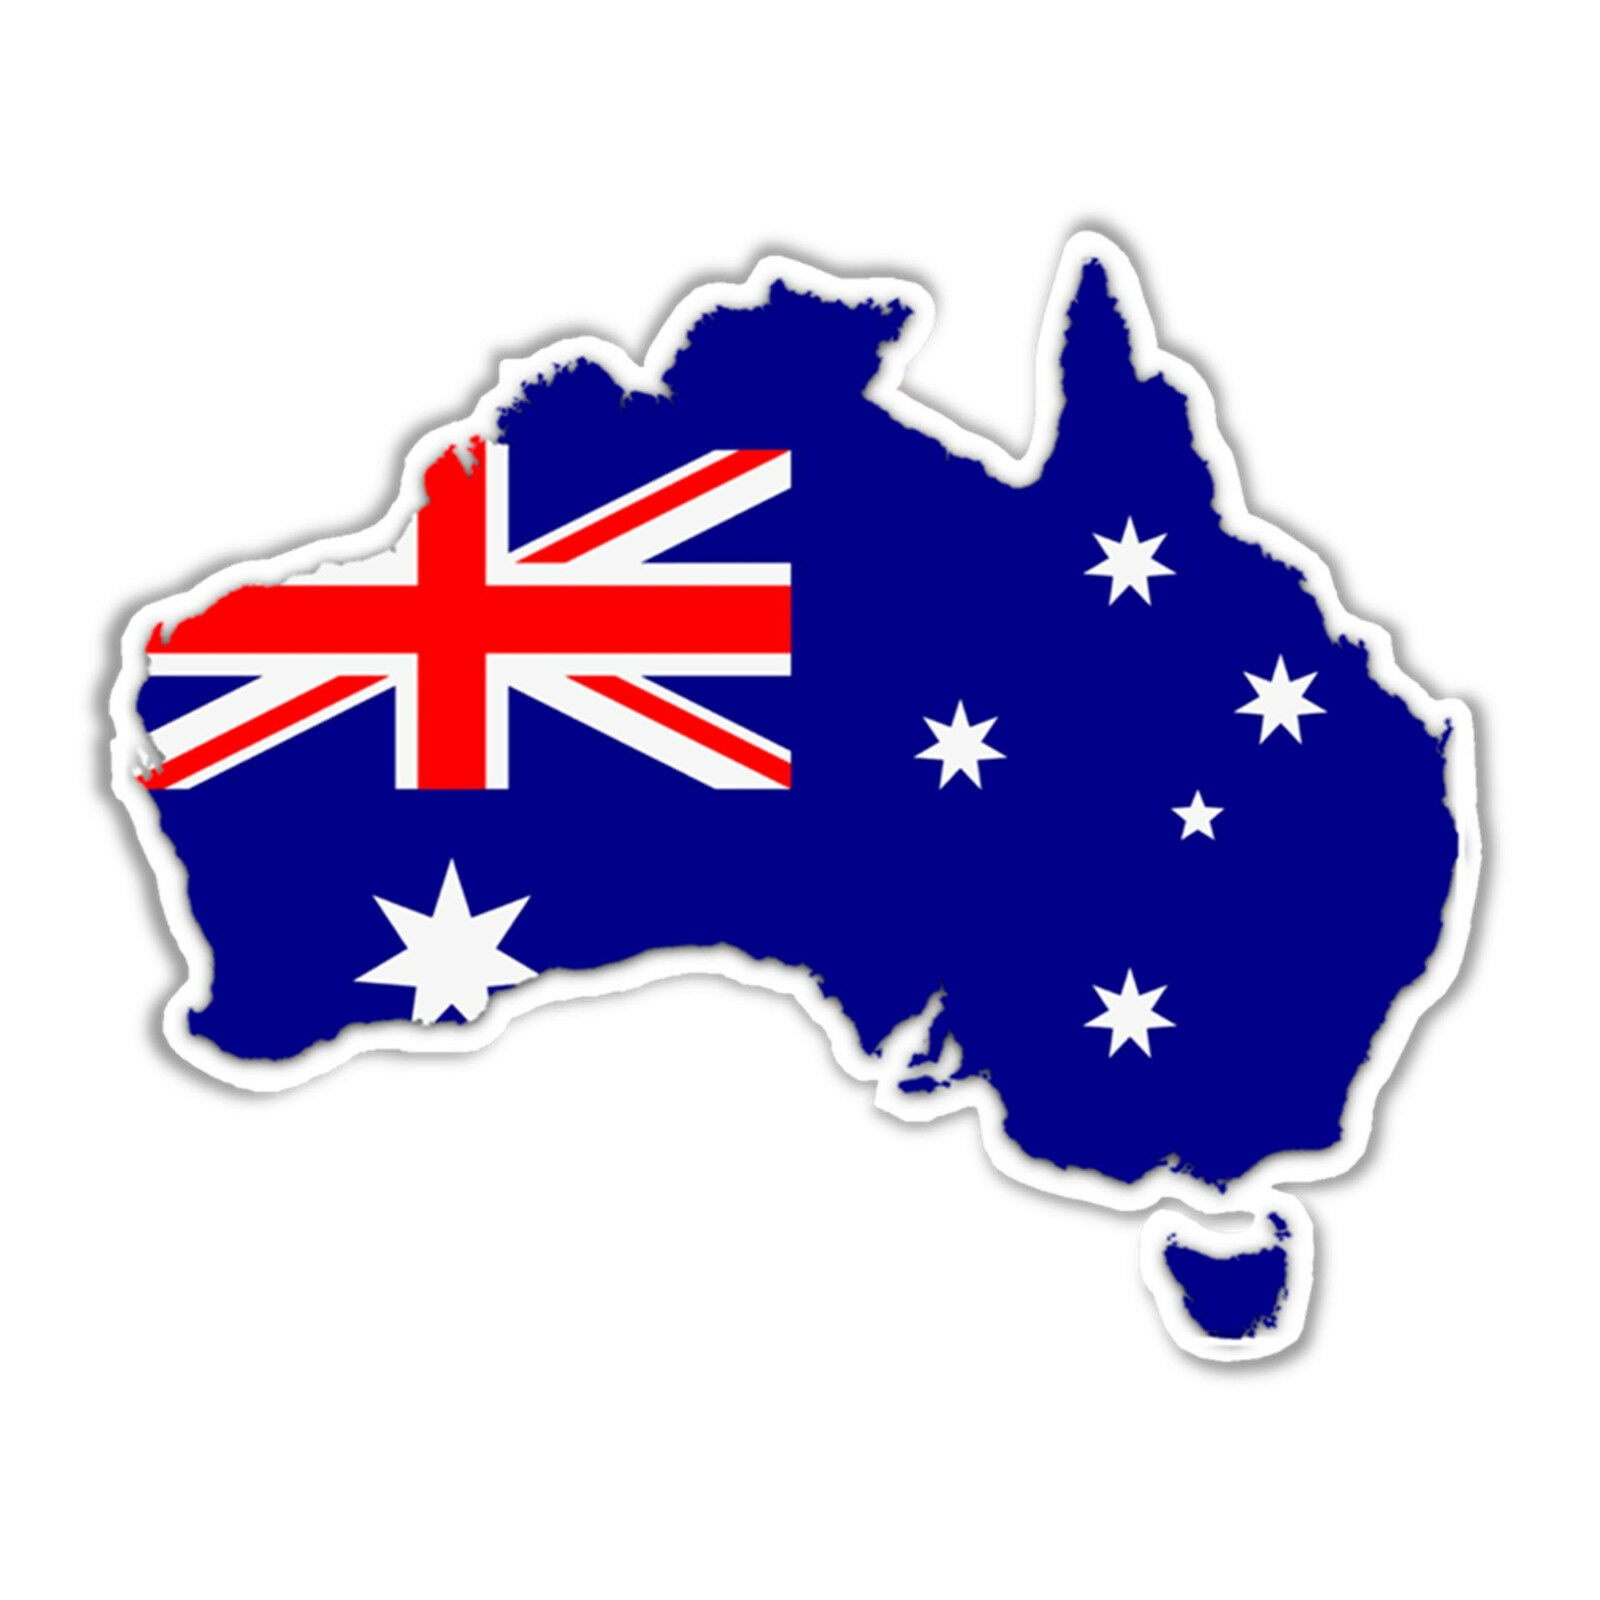 map of Australia with Australian flag Aussie vinyl sticker weatherproof 117  mm | eBay